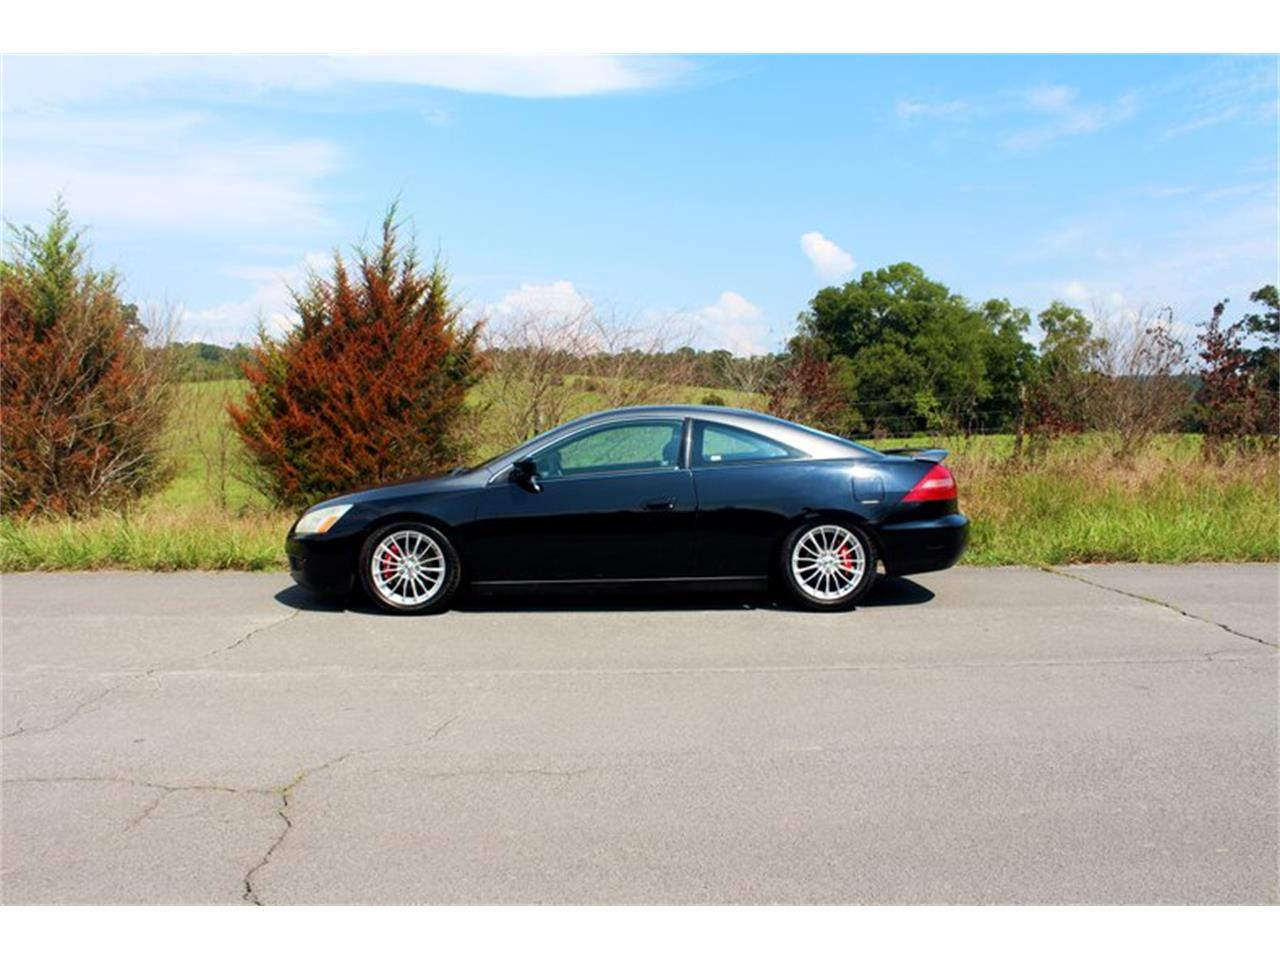 Large Picture of '04 Accord located in Tennessee Offered by Smoky Mountain Traders - OH0M